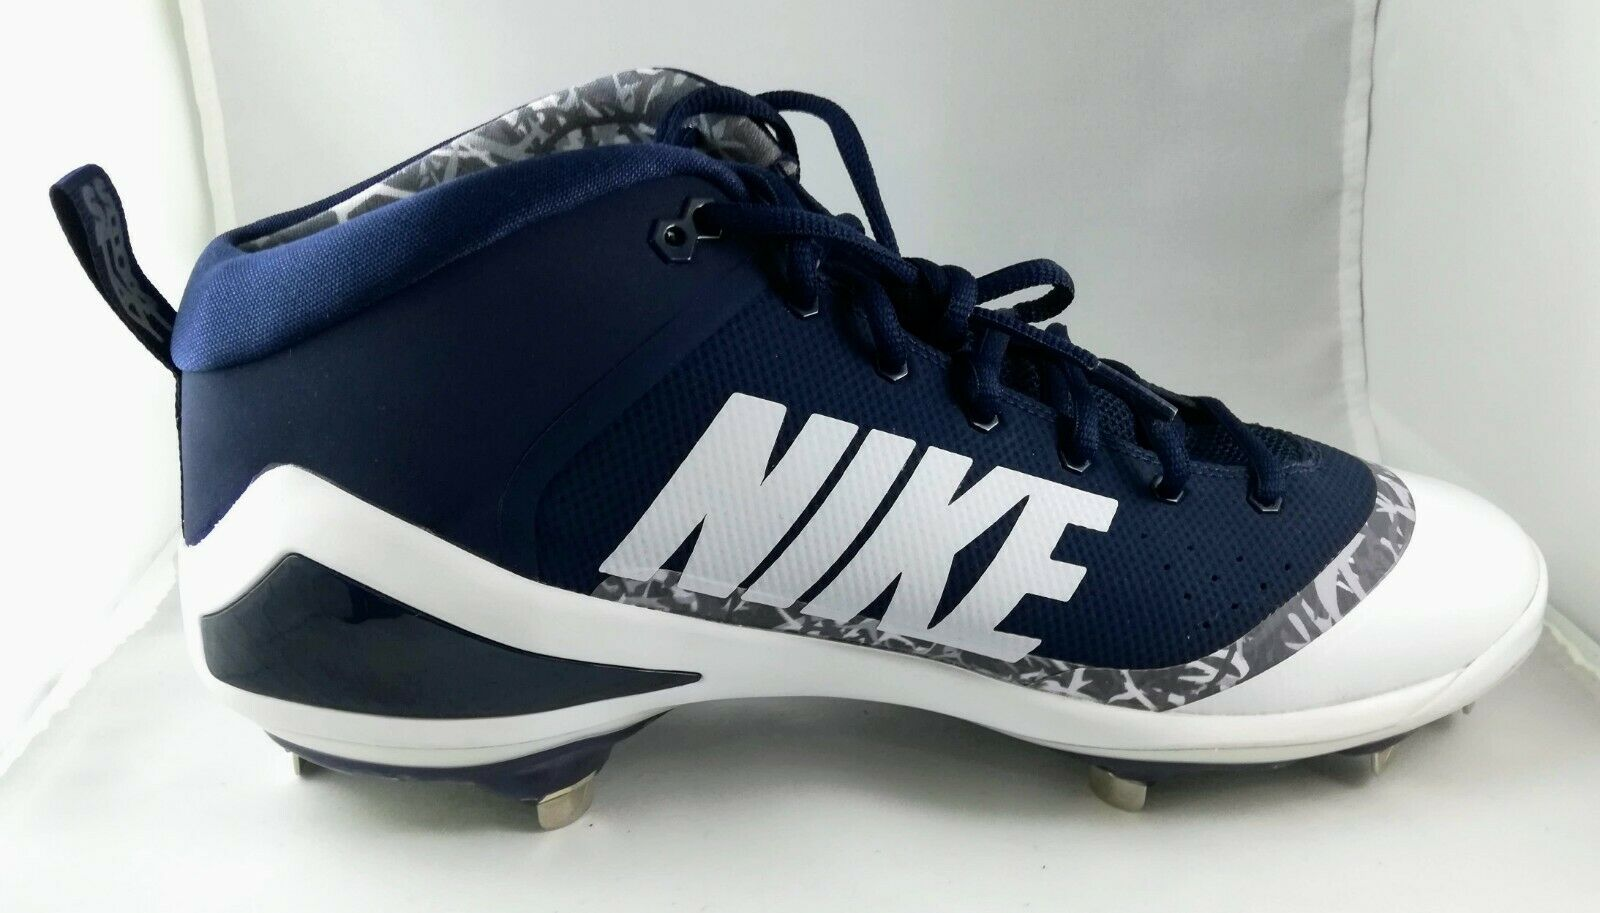 Nike Mens Size 13 Force Zoom Mike Trout 4 Navy Baseball Metal Cleats